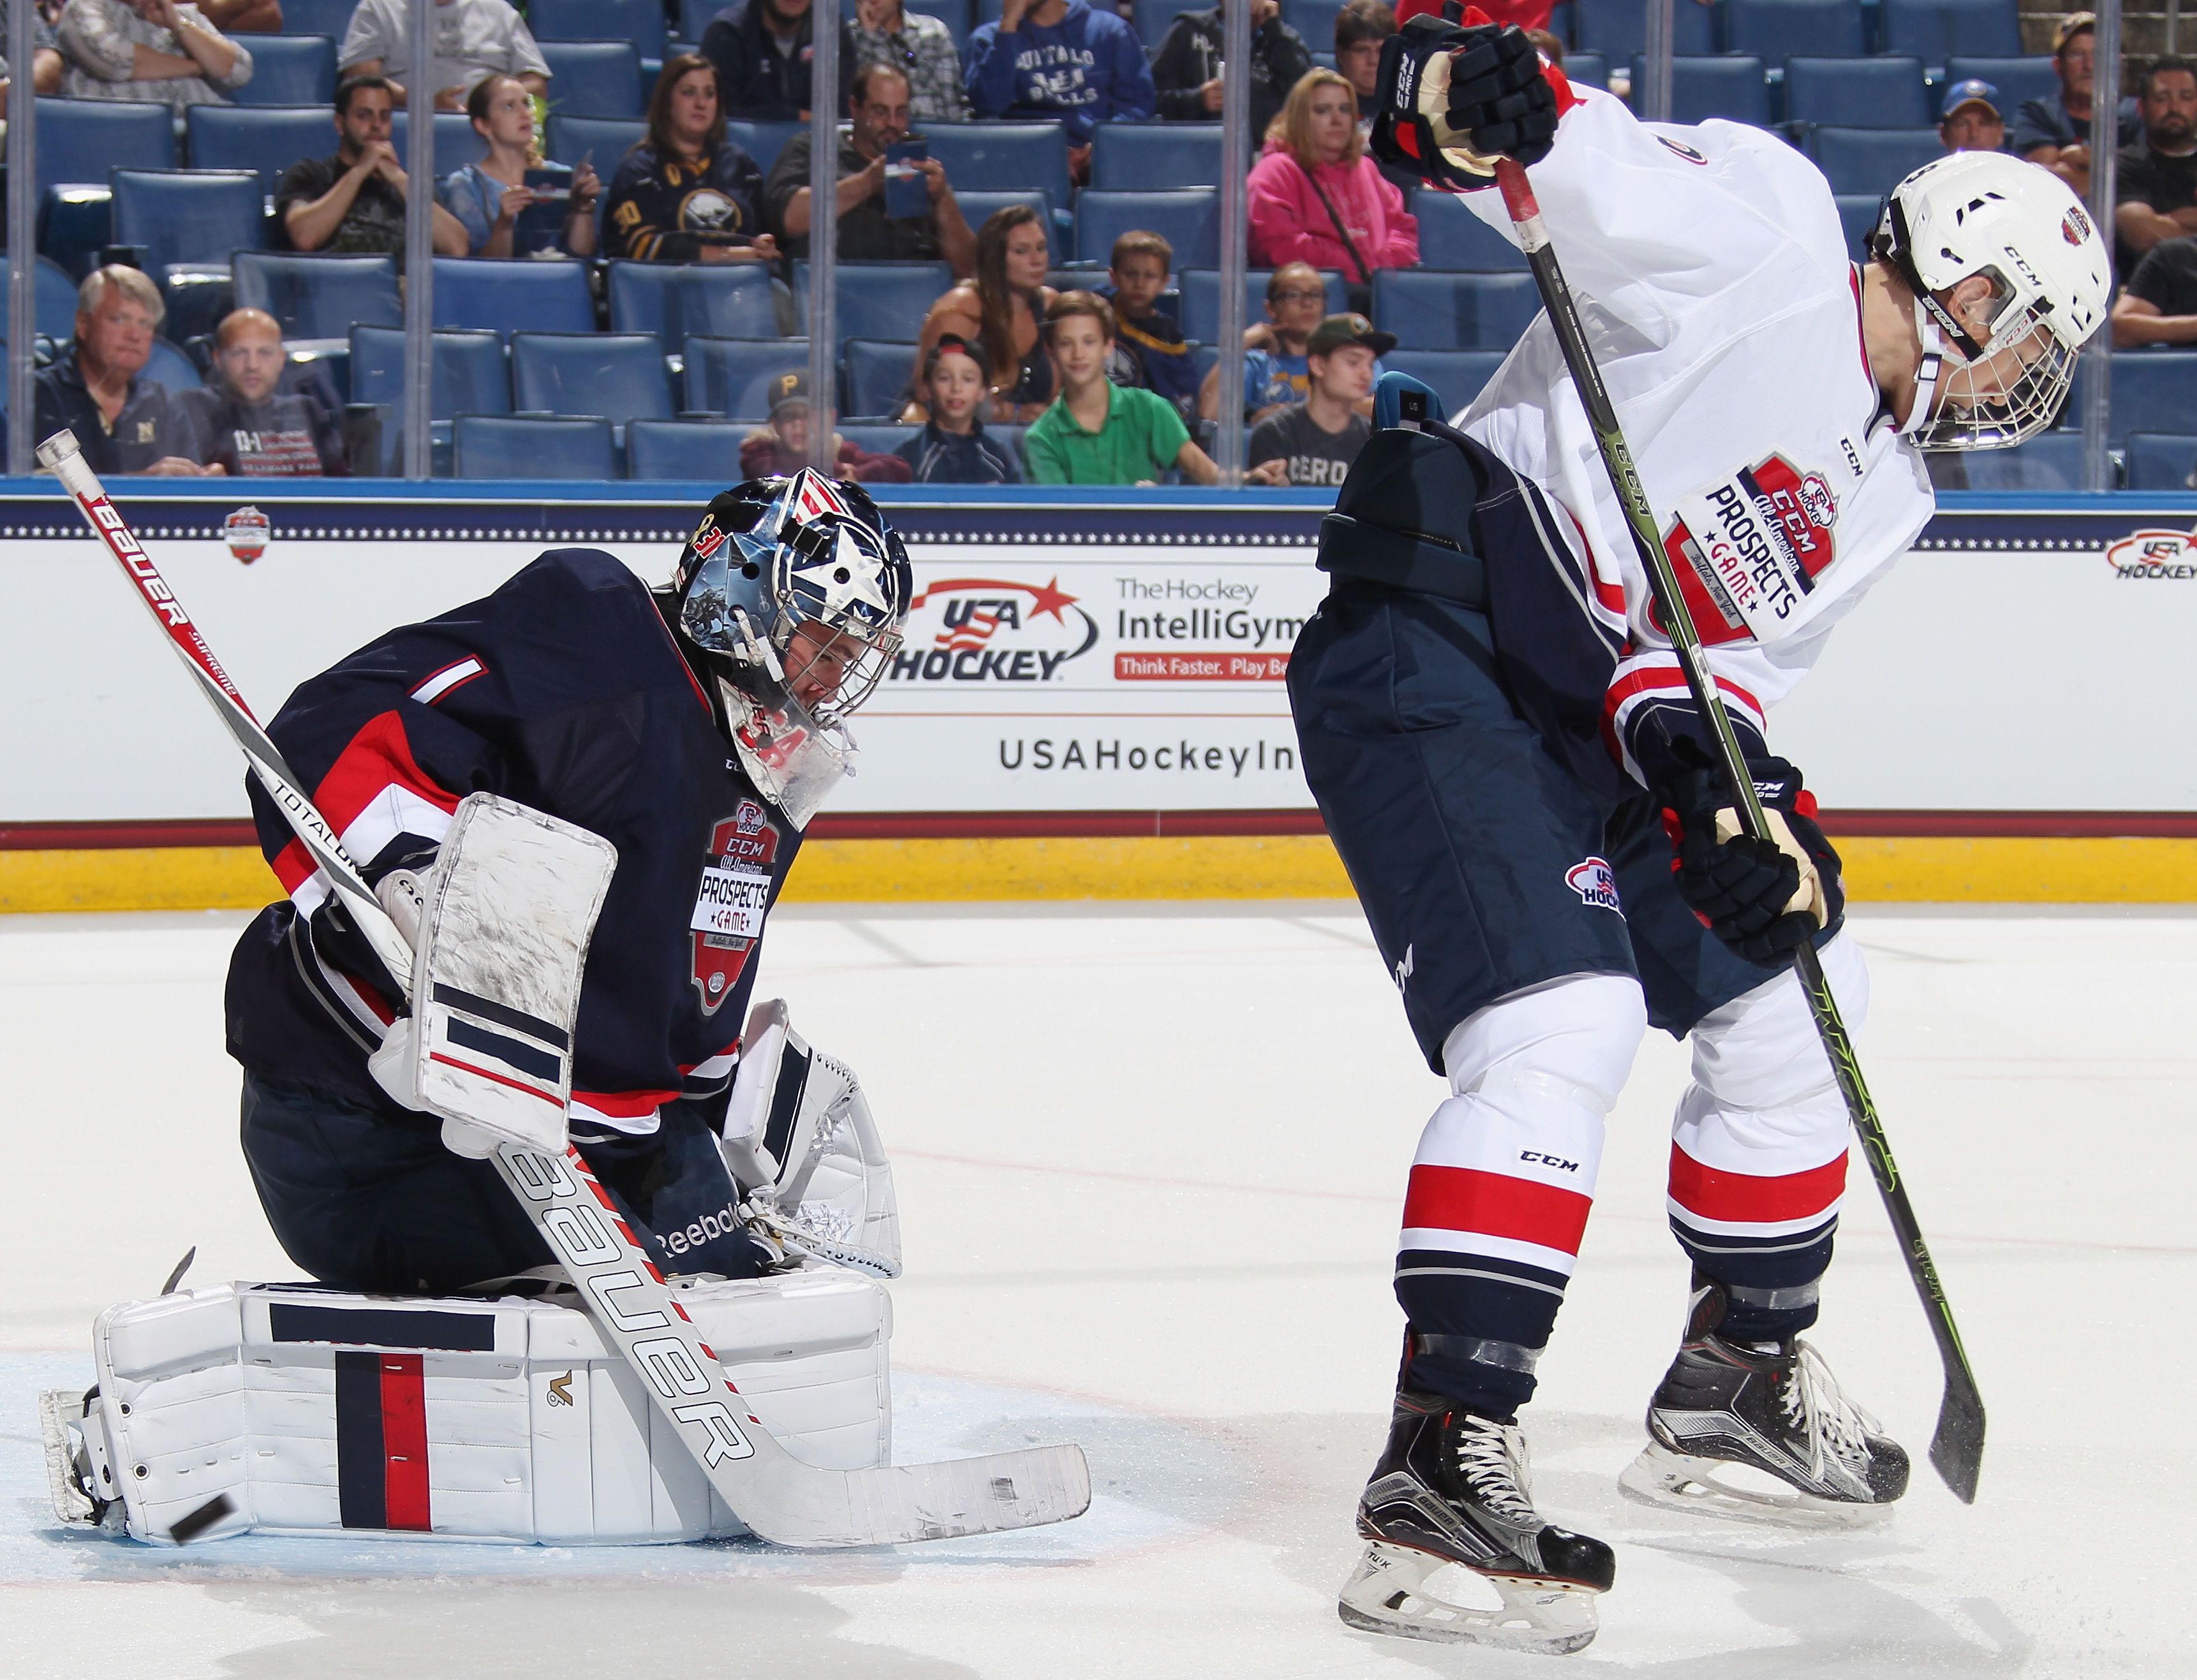 Tri-City Americans goalie Evan Sarthou proved last week why he was chosen to play in September's USA Hockey All-American Prospects Game.